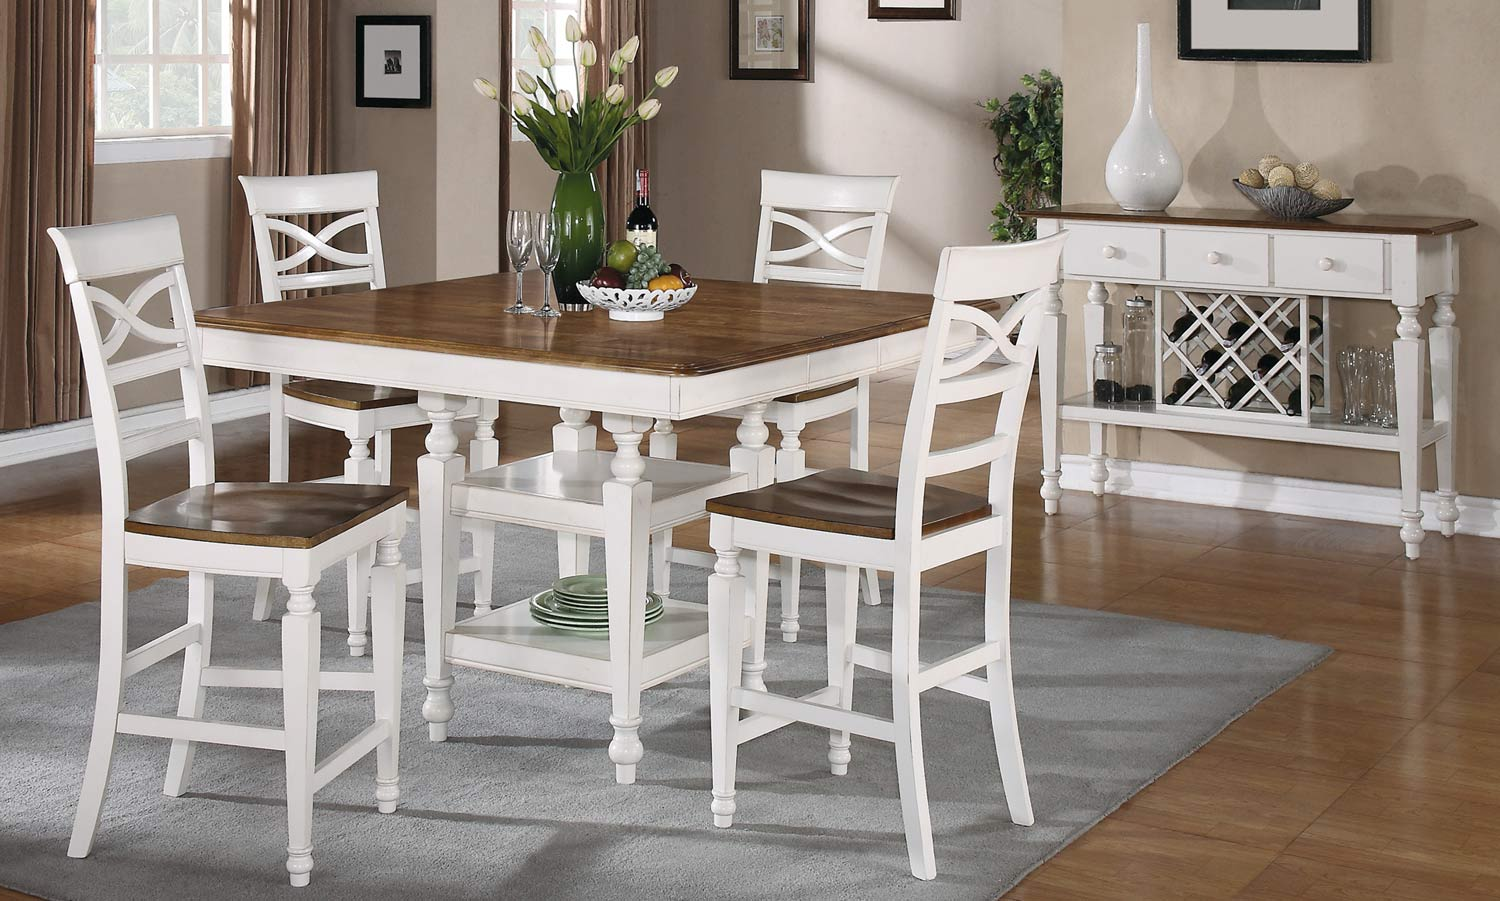 Counter Height White Dining Set : Ashley Counter Height Dining Set - Oak - Antique White 104005-Din-Set ...